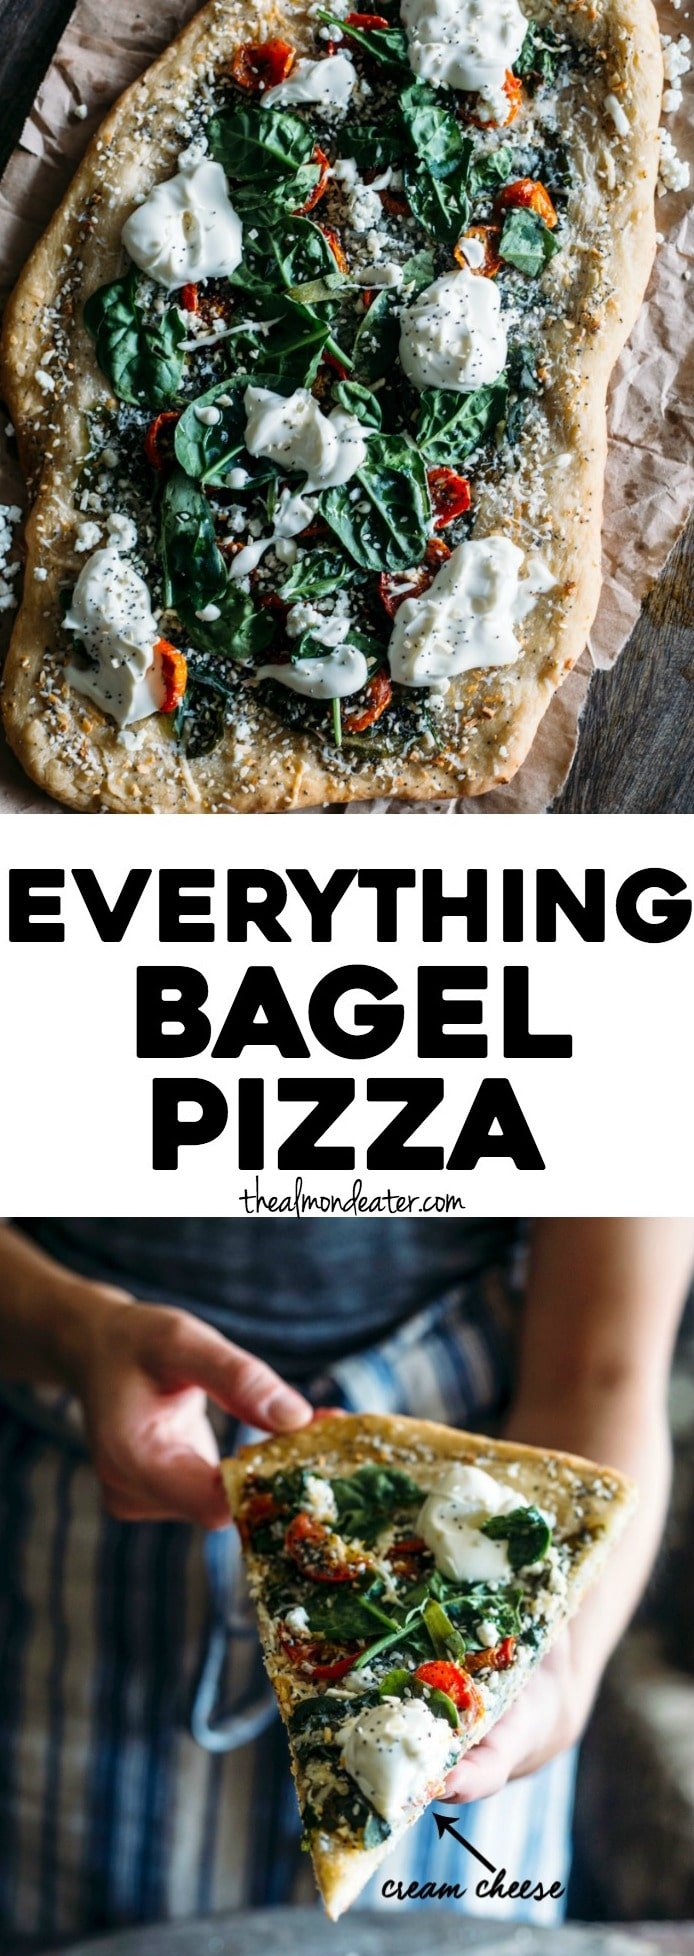 "Everything Bagel Pizza | Pizza topped with ""everything"" bagel spices, cheese, spinach and cream cheese, aka the pizza dreams are made of! 